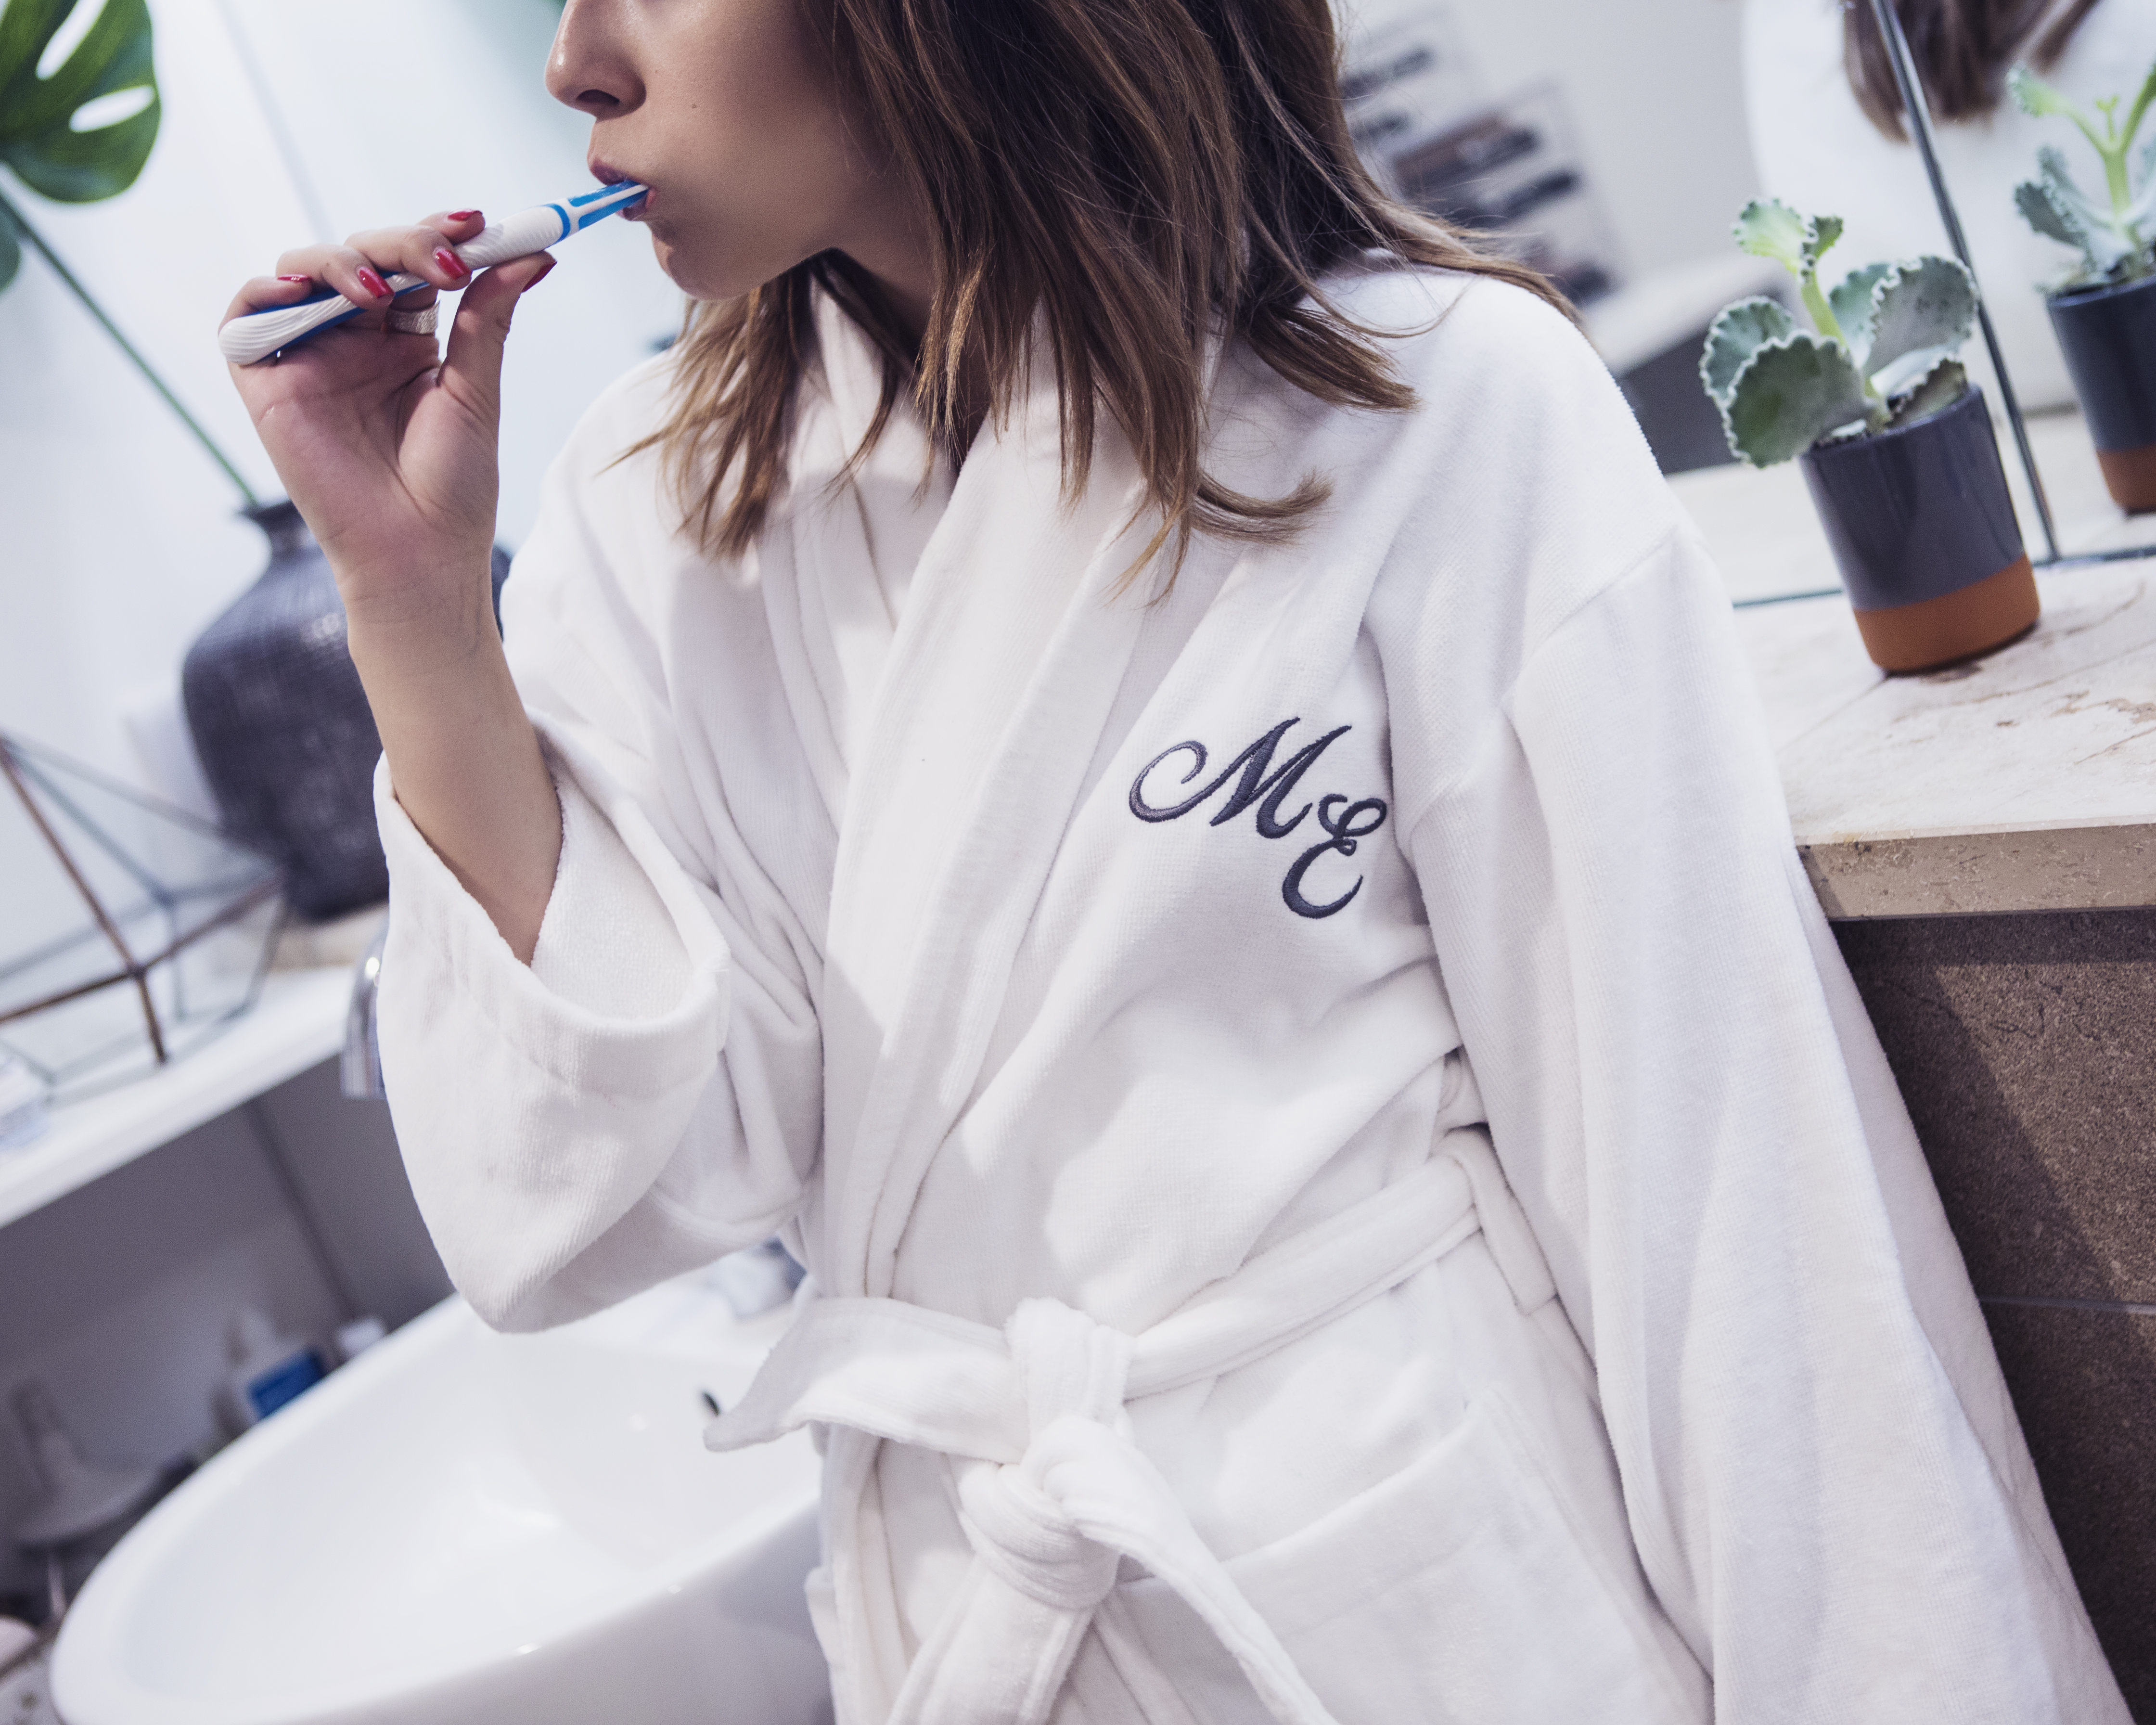 CHRISTY PERSONALISED BATH ROBES